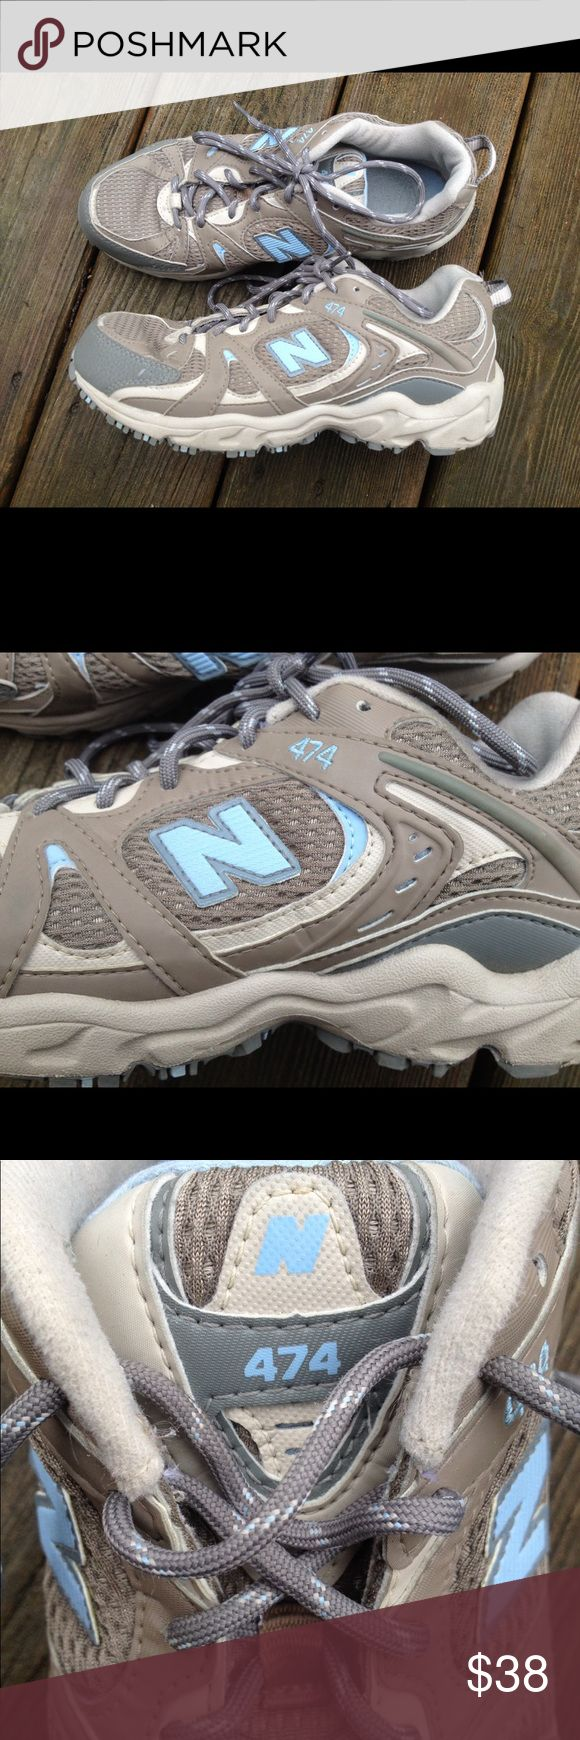 NEW BALANCE All Terrain 474 Women's Sneakers Shoes These are fantastic for nearly any outdoor activity and looks to me like these are almost new!! Gorgeous grey's, Browns and baby blue accents throughout. Reinforcements on heel and tie for ultimate durability, comfort sole and excellent tread. What a find! Women's size 7.5. New Balance Shoes Sneakers